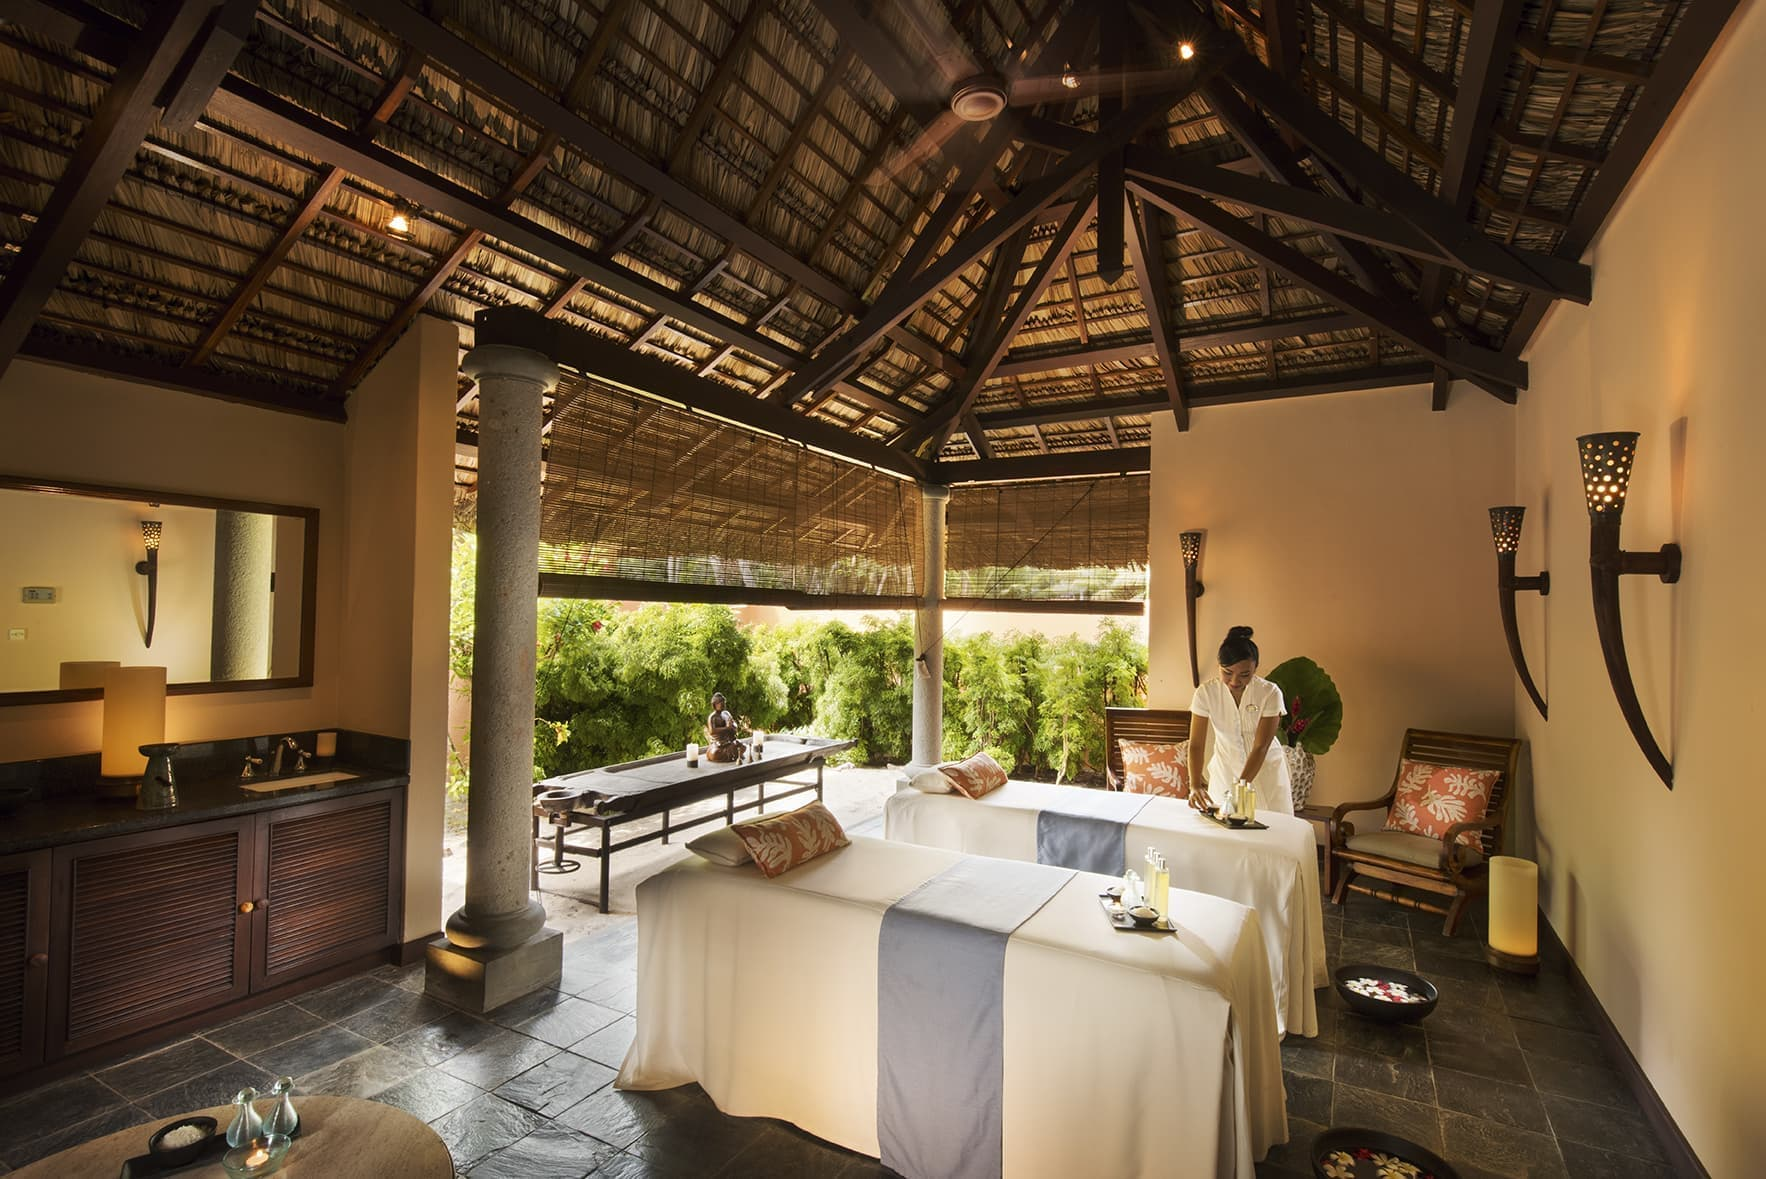 Couple Spa Ritual - Constance Lemuria Honeymoon Seychelles